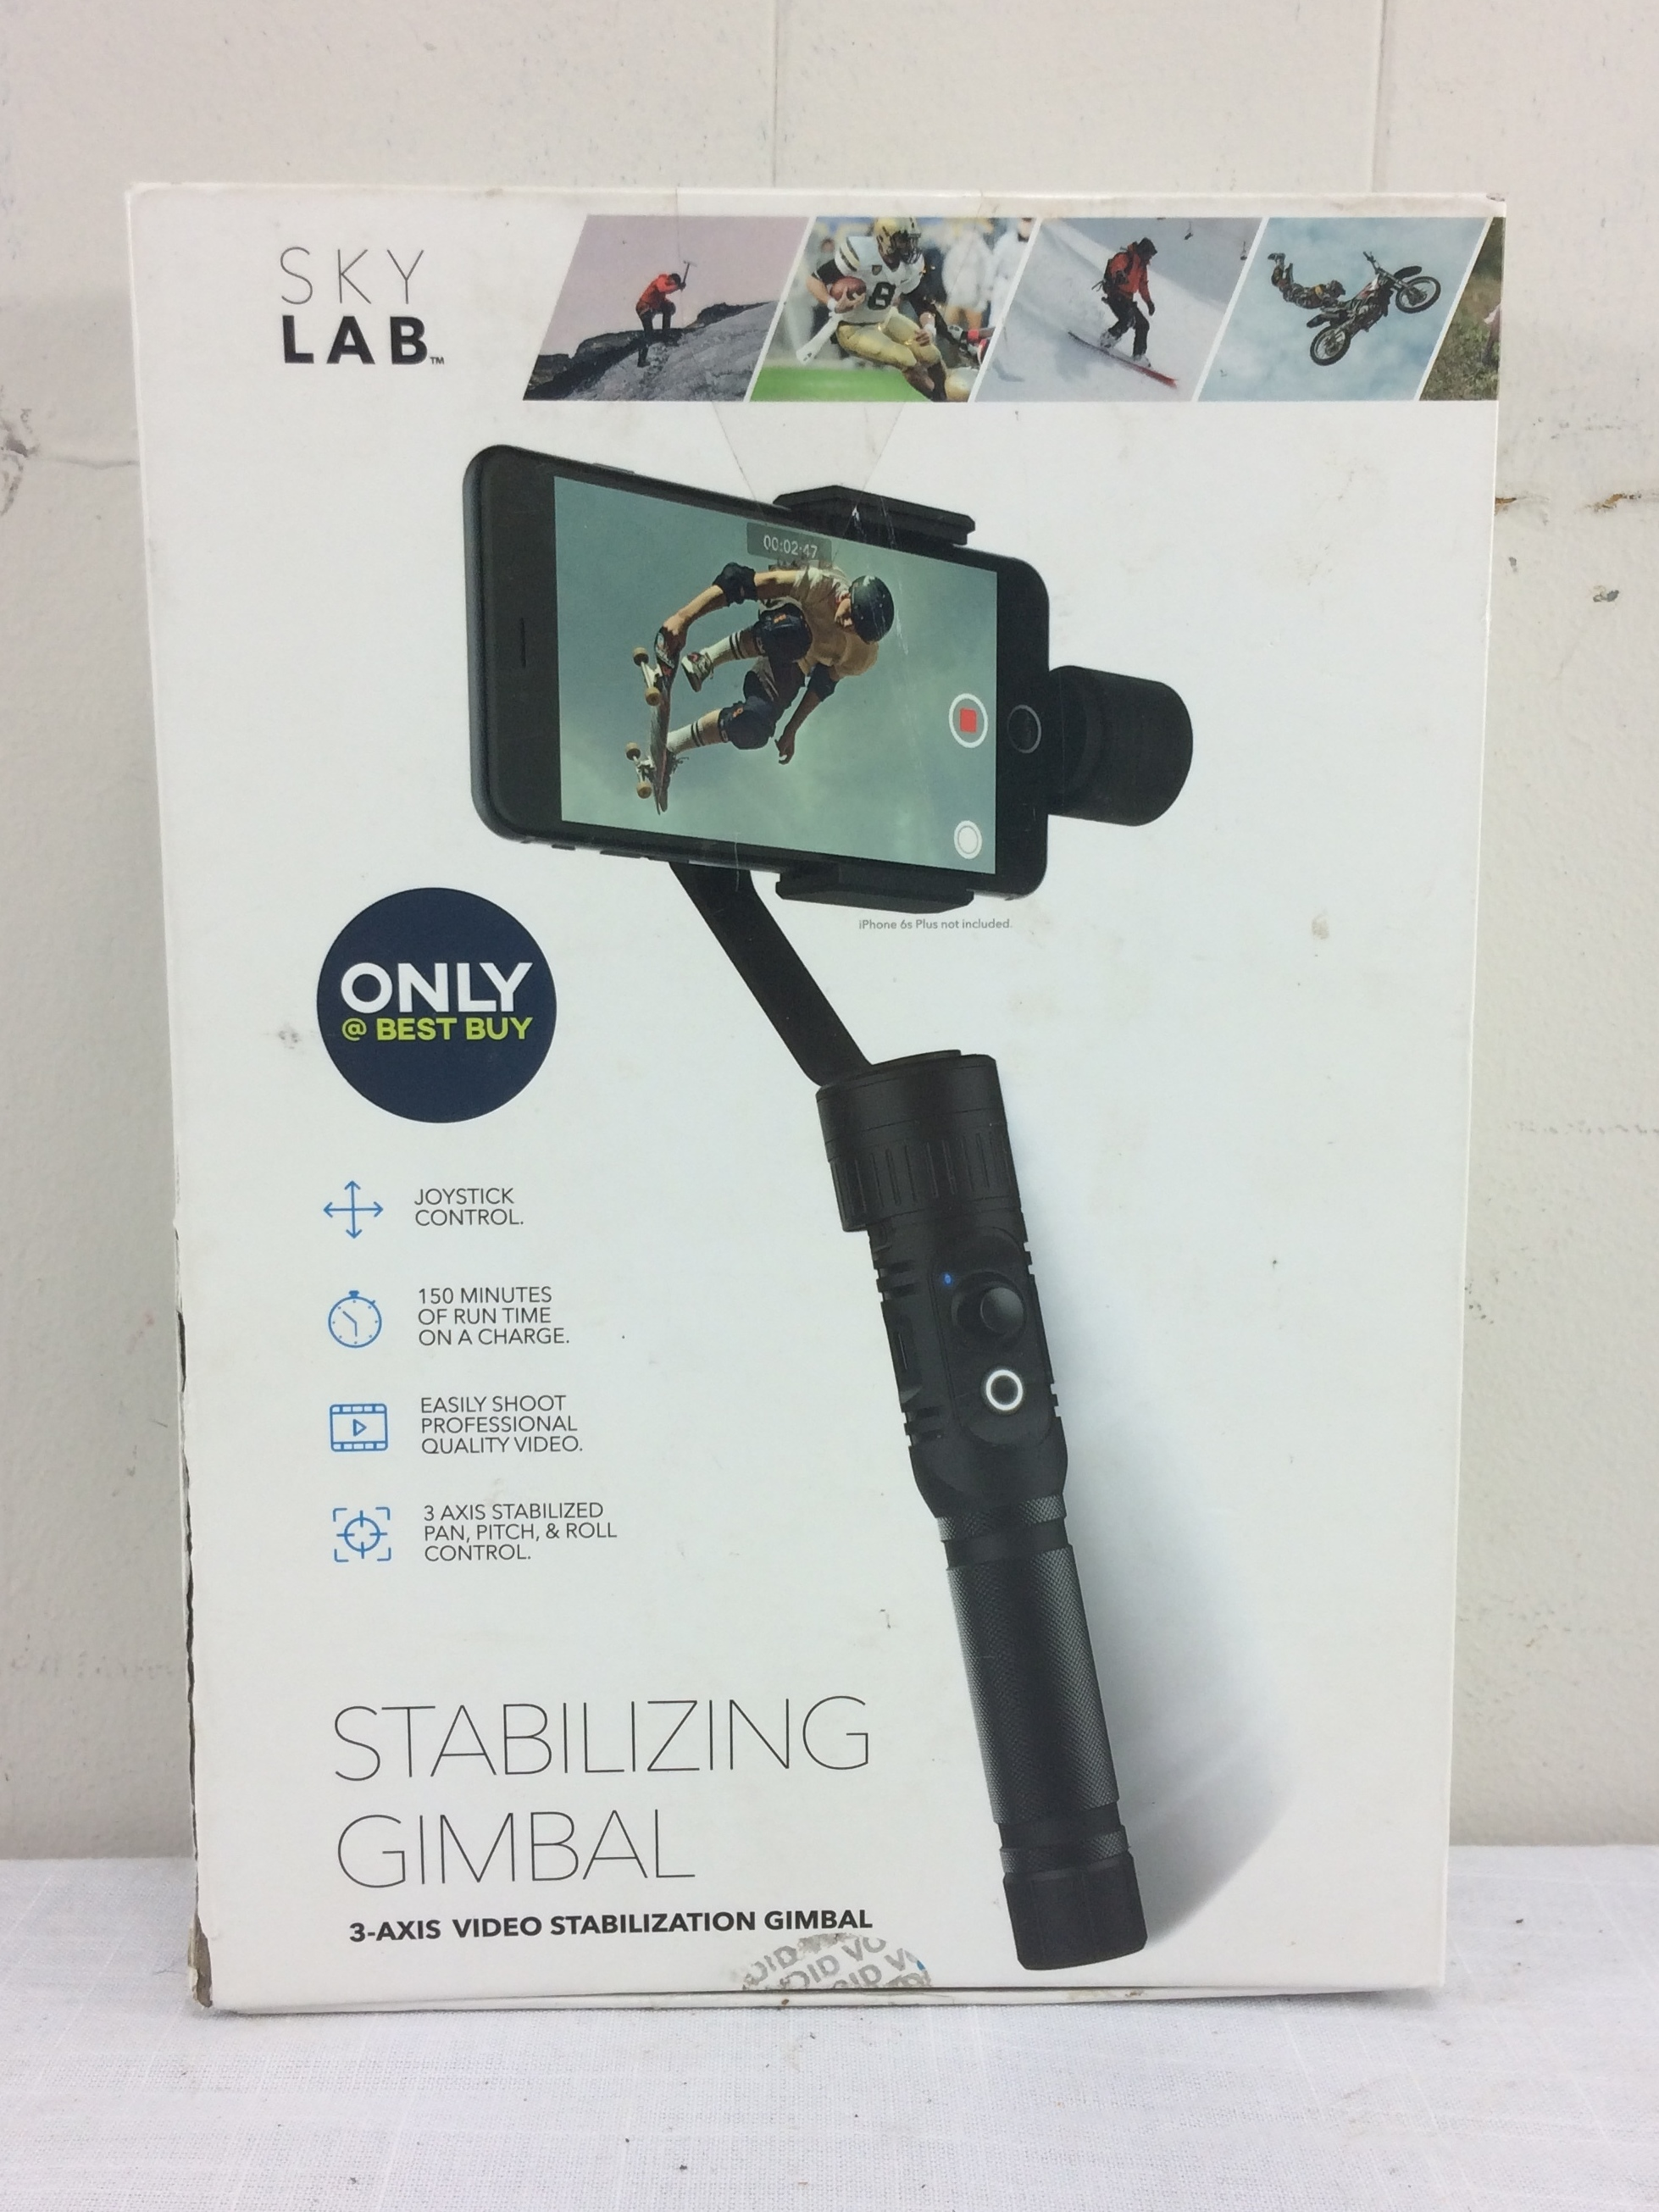 SkyLab 3-Axis Video Stabilization Gimbal for Mobile Phones